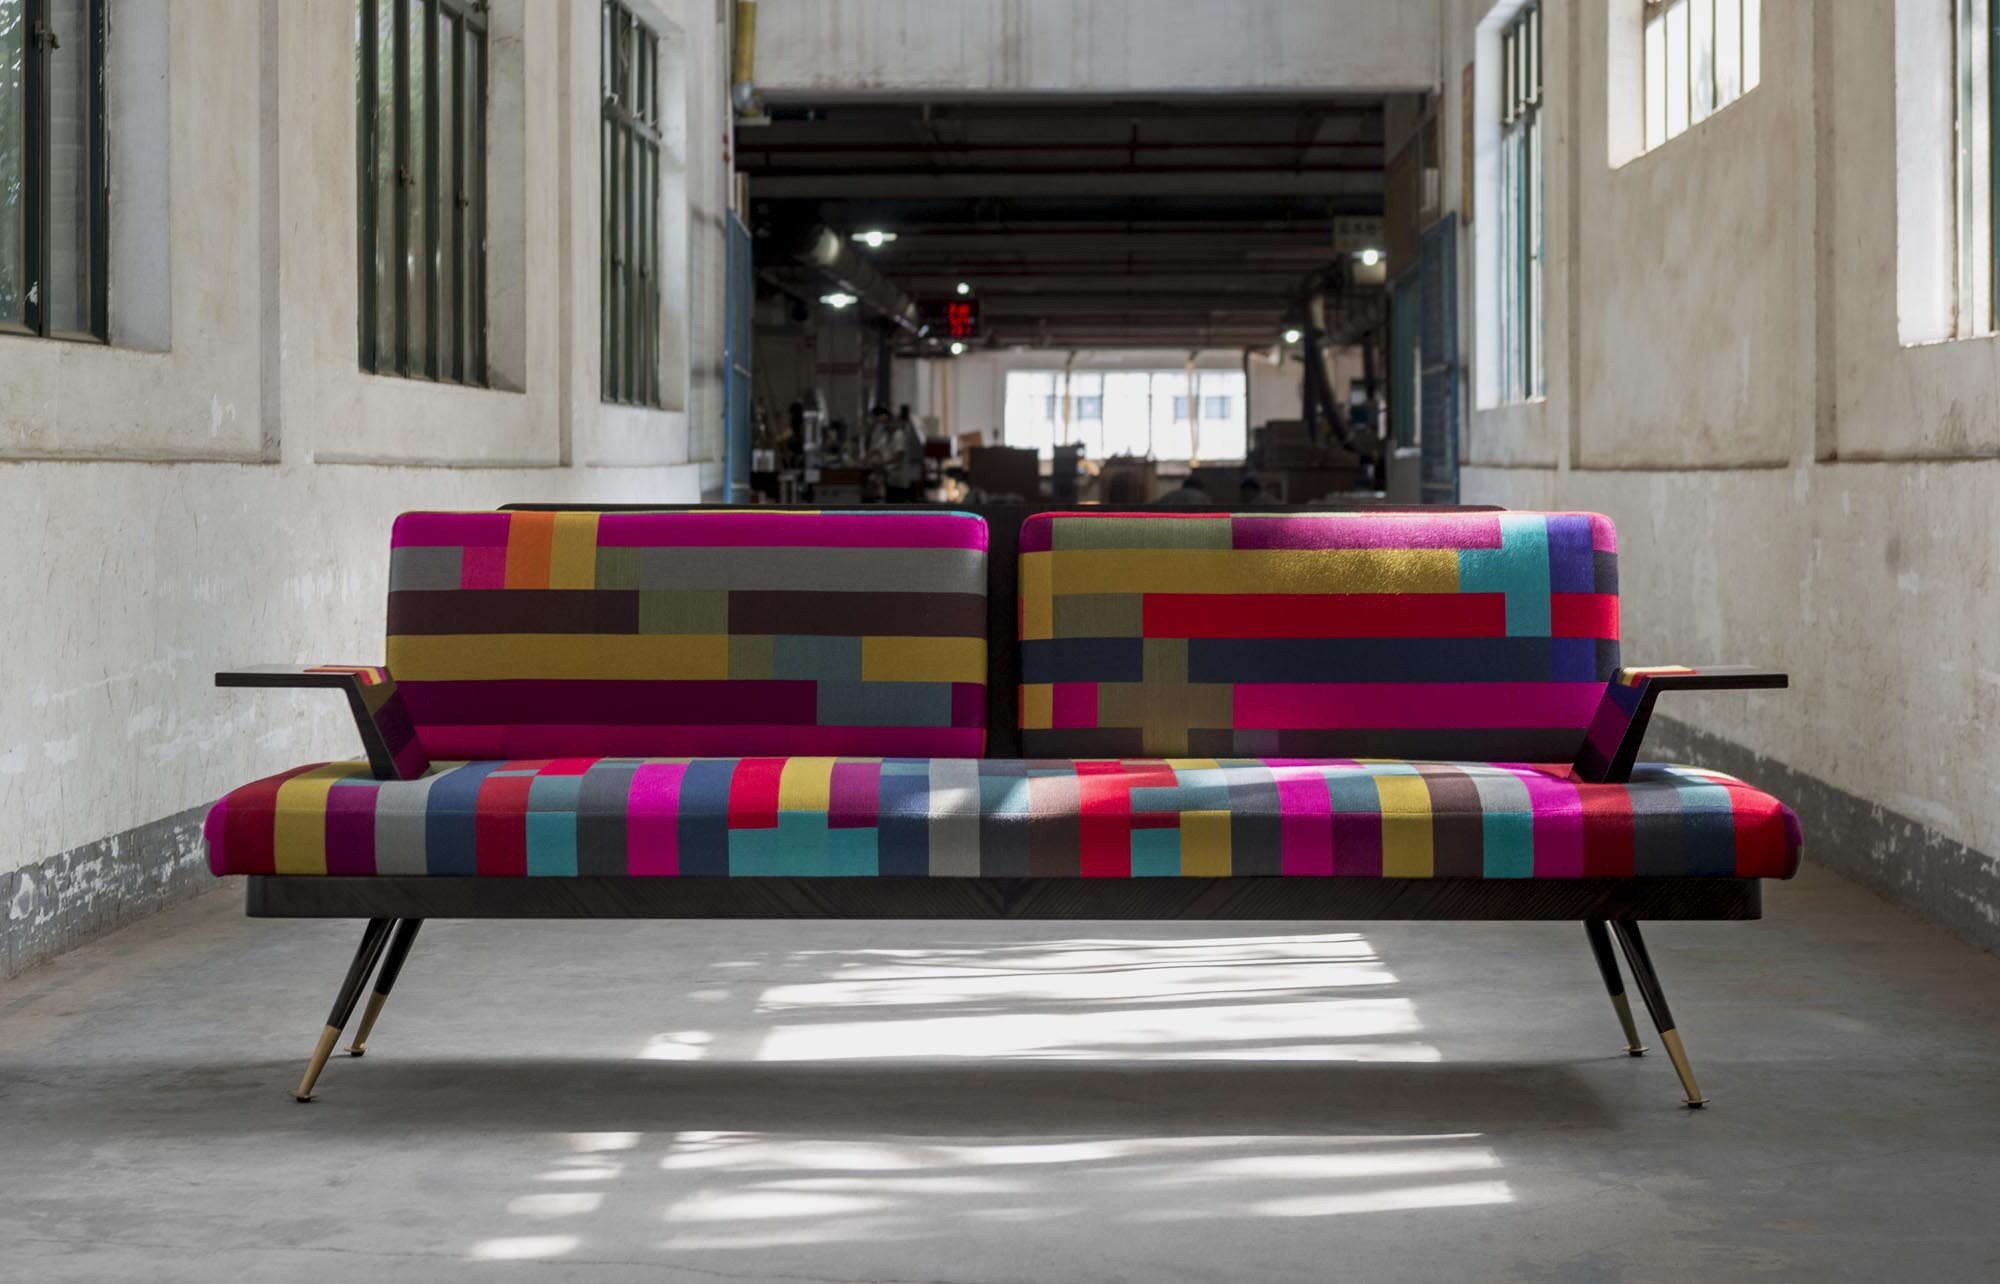 City Gull Wing Sofa The London Collection by Decca Home Assembly fabric